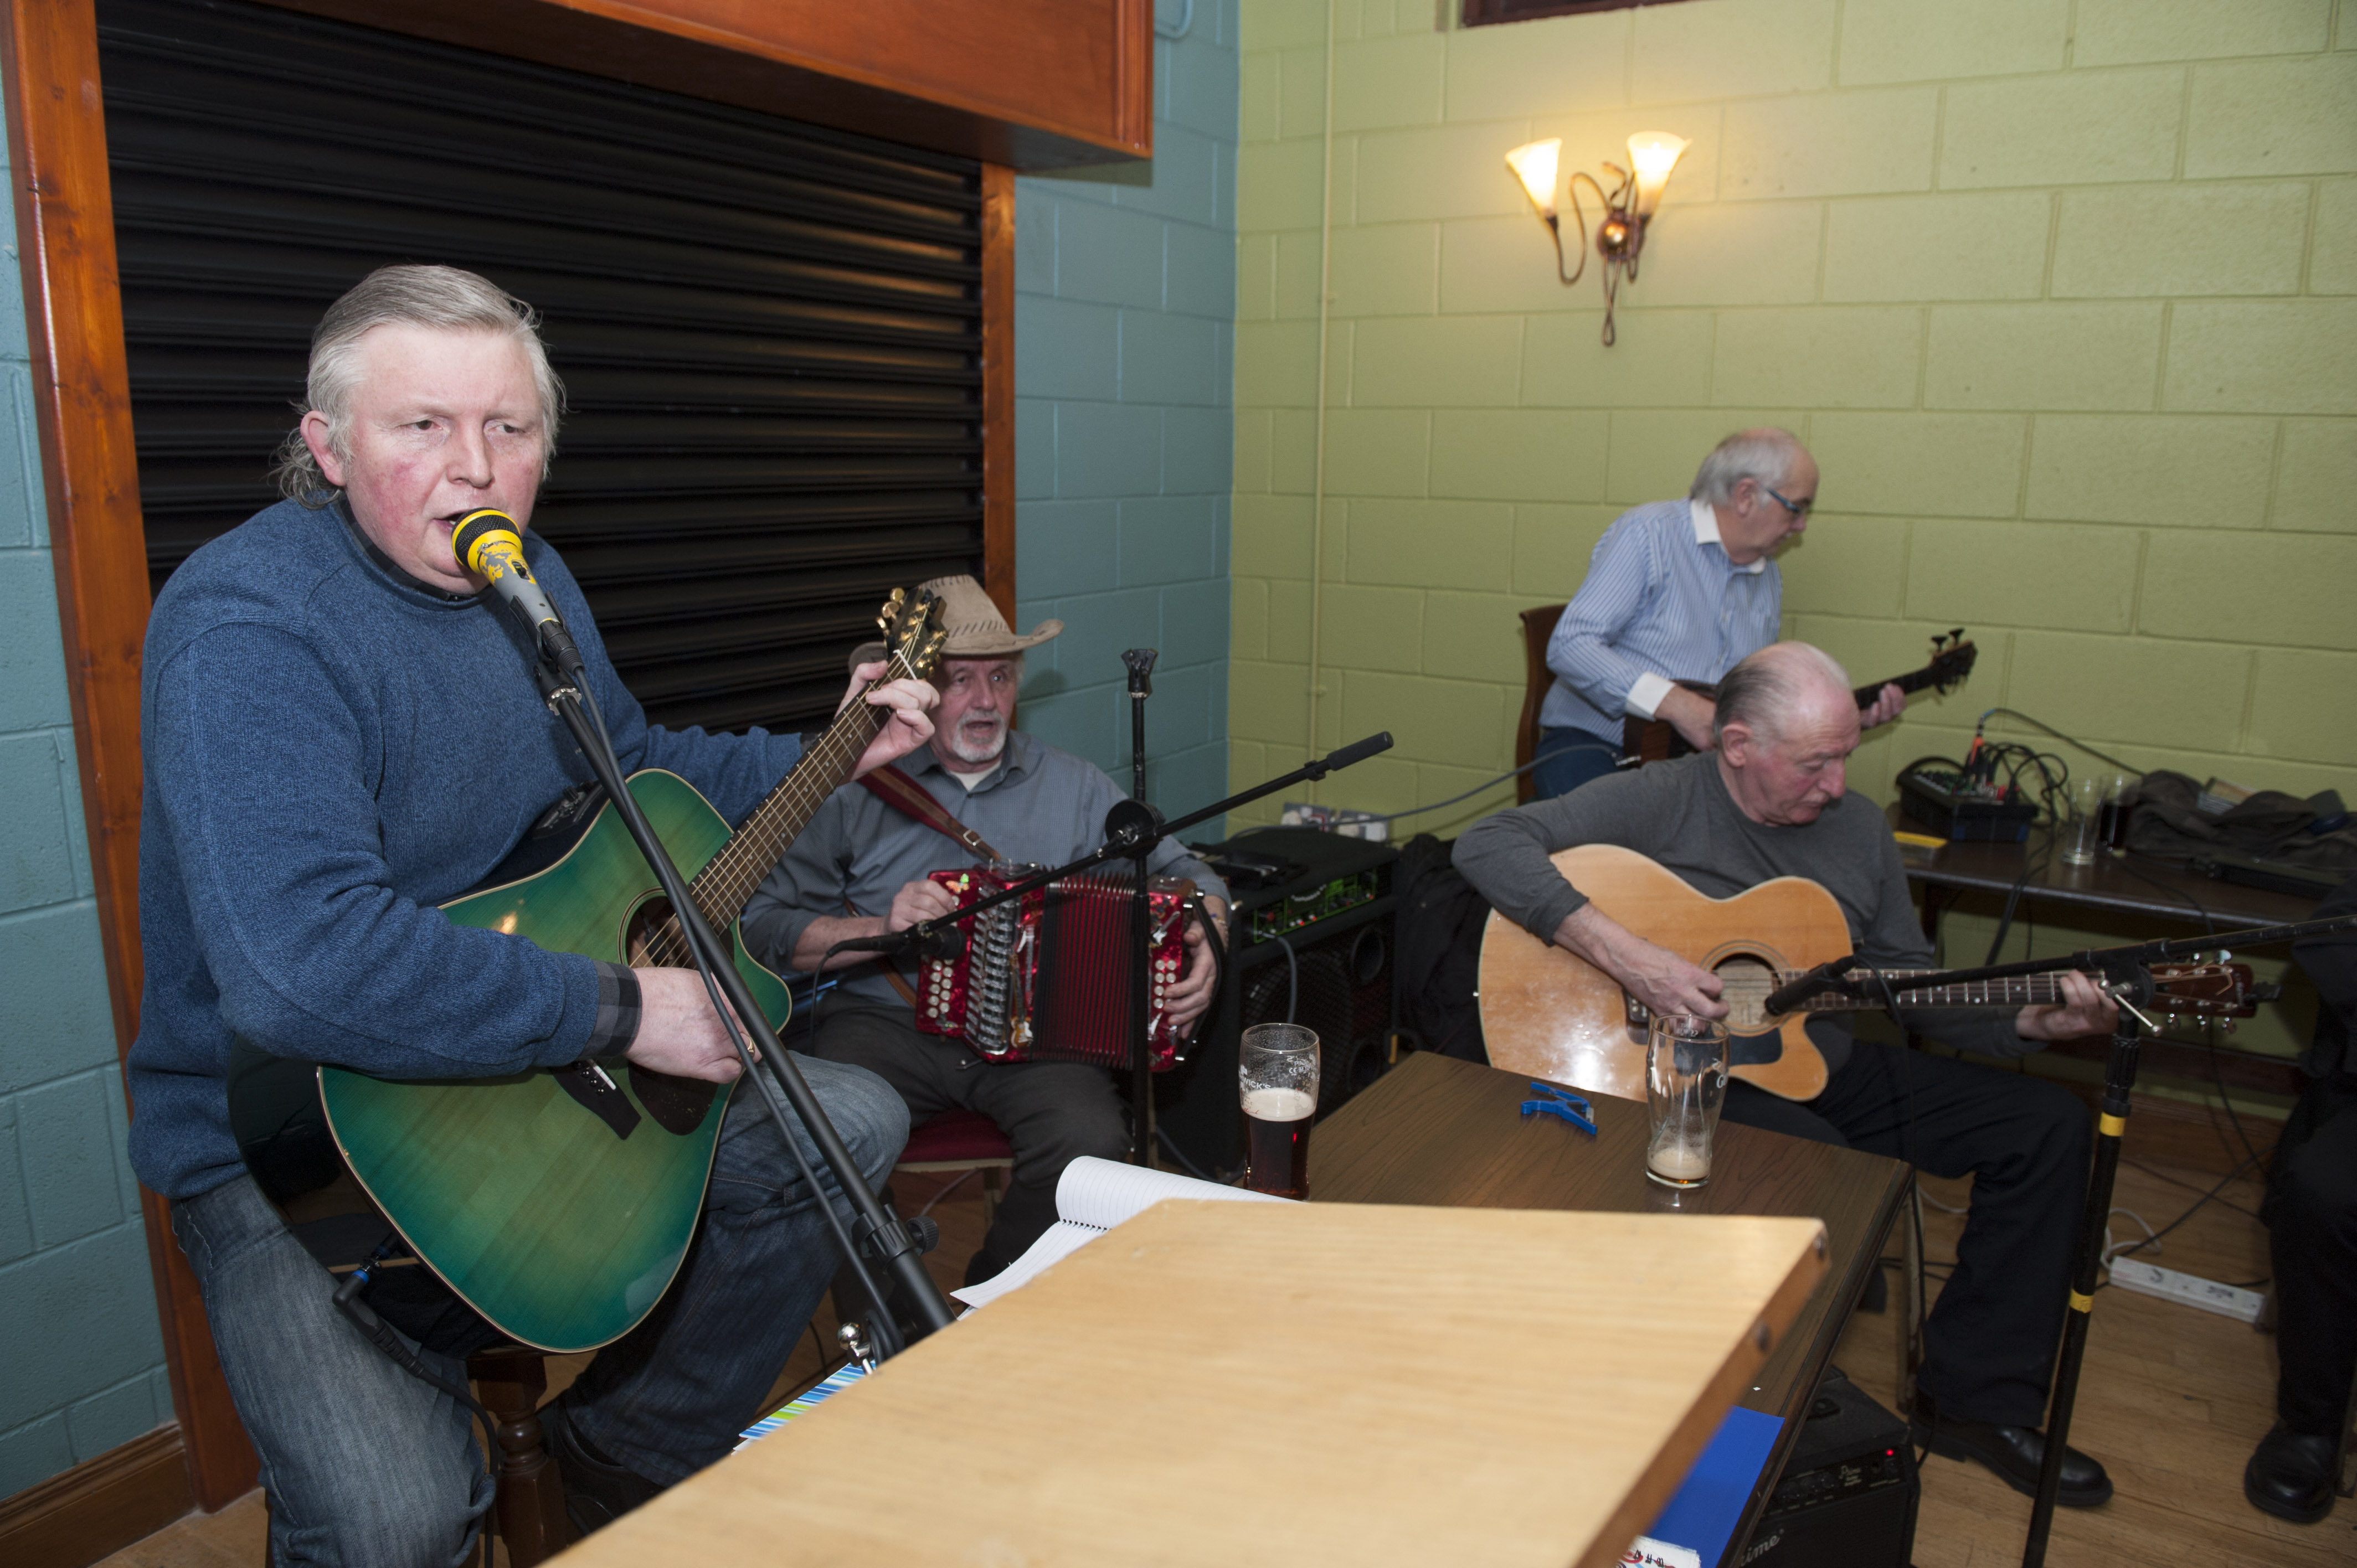 Packie McDonald, Tom Connolly, Anthony Ballintine and John McKenna, who were some of the band that provided the music for the Monaghan Arch Club Party. Missing from photo is Des Murphy. ©Rory Geary/The Northern Standard